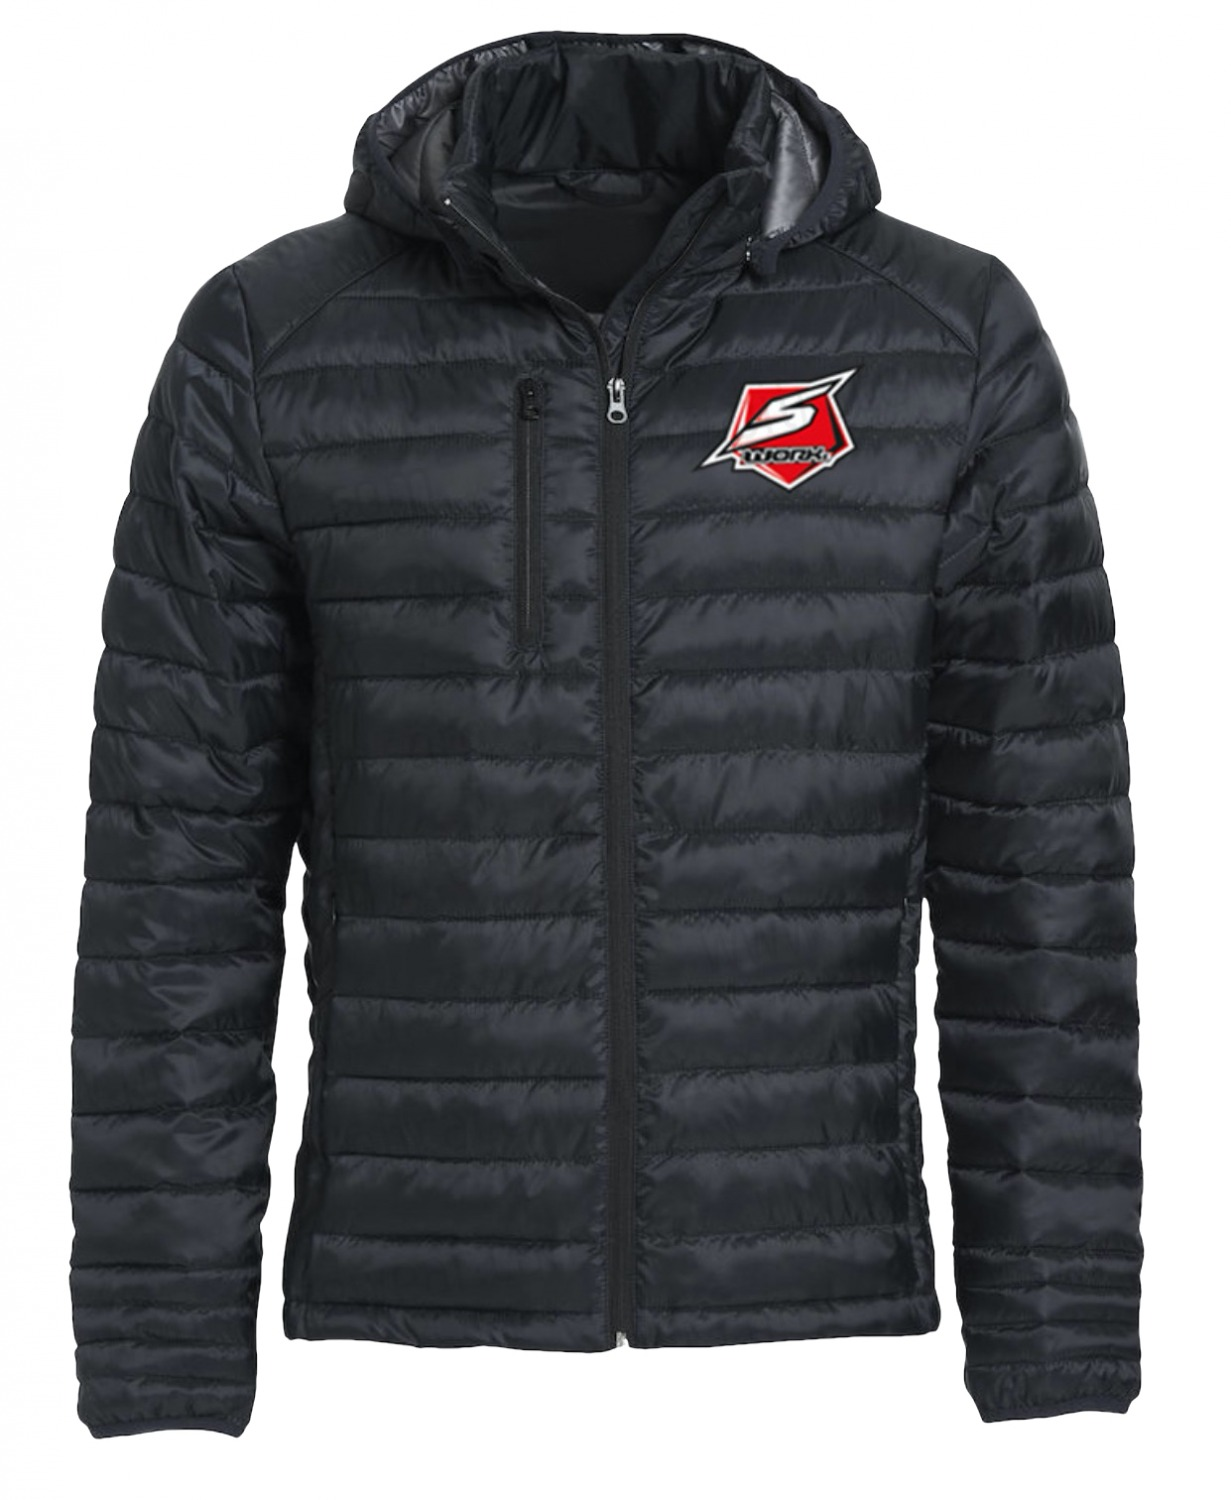 SWORKz Fashion Design Team Winter Jacket (3XLarge)